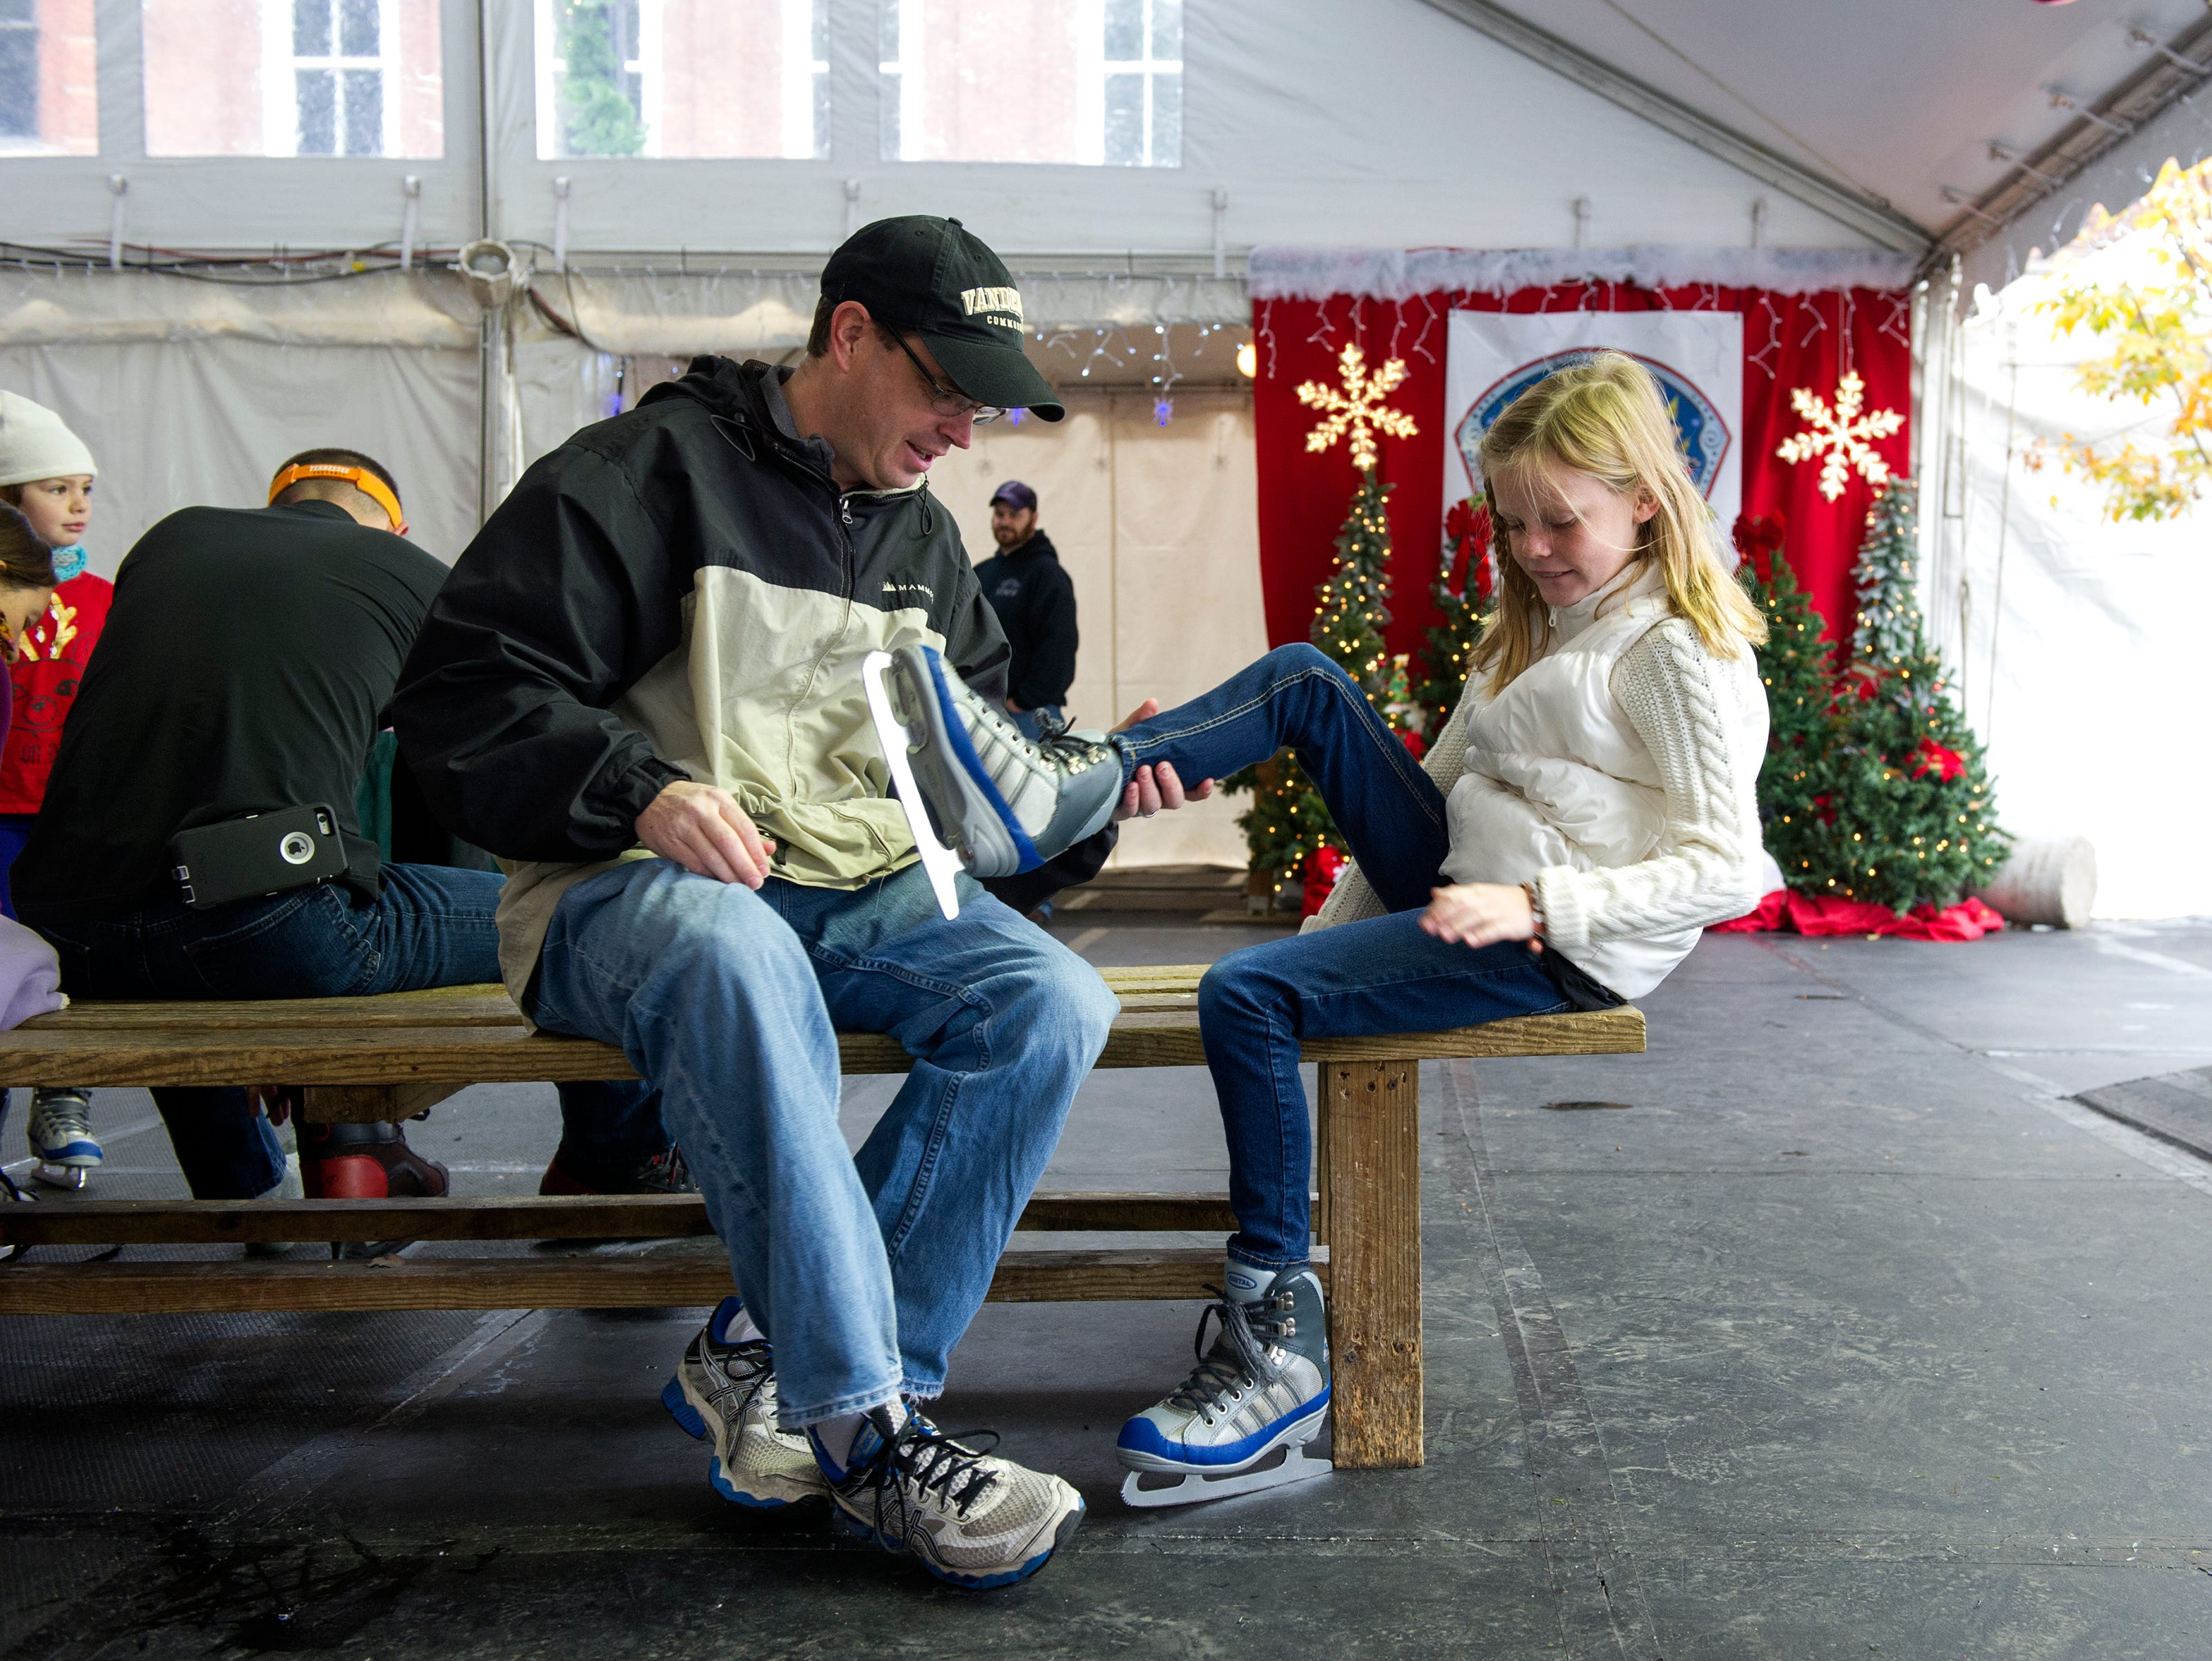 Marshall Bartlett (left) helps his daughter Erin Bartlett, 9, get her skates on during opening weekend for the Market Square ice skating rink Saturday, Nov. 28, 2015.